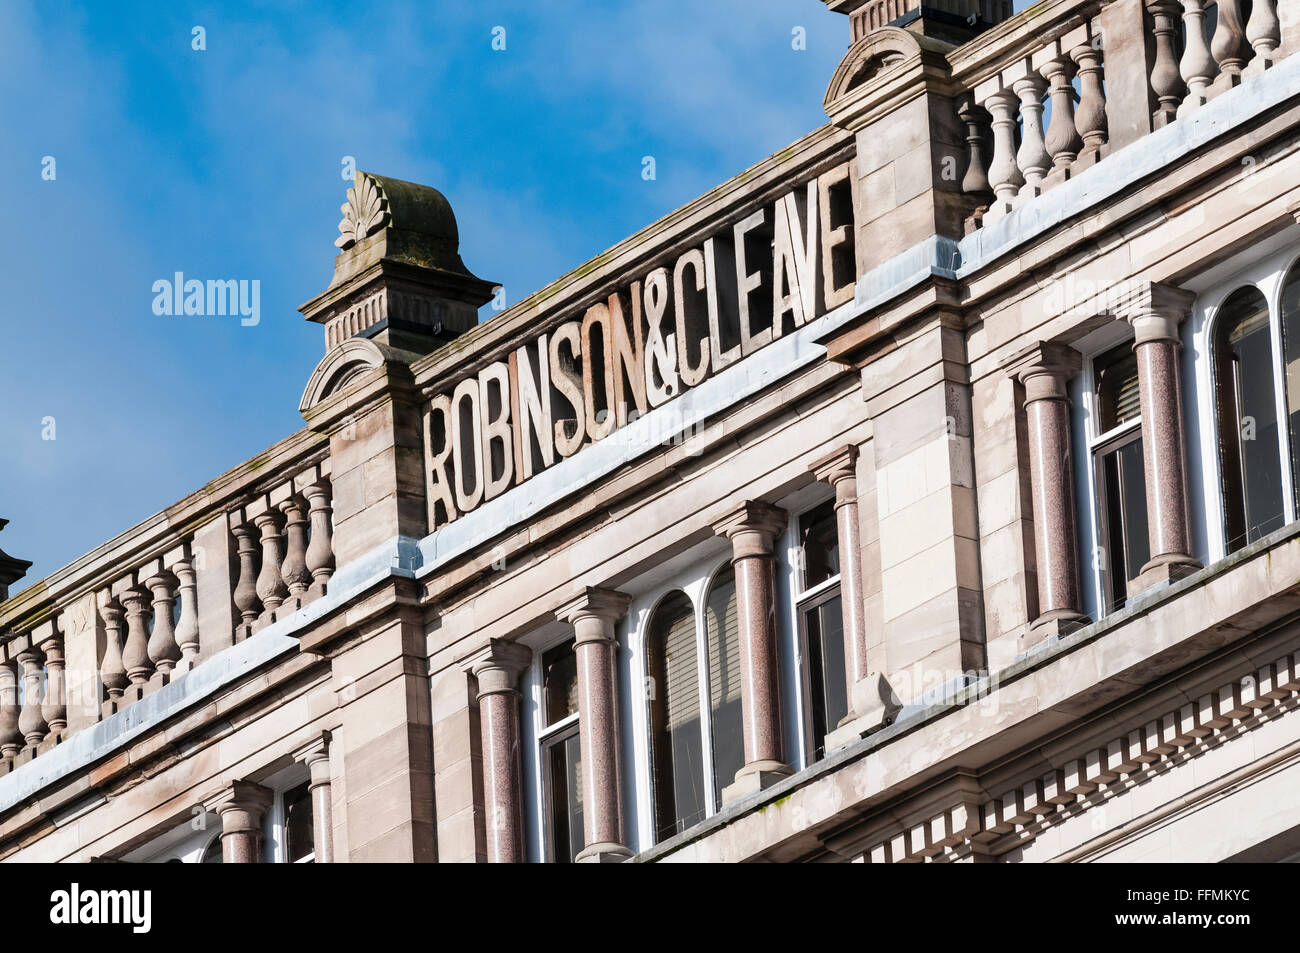 Robinson and Cleaver building, Belfast - Stock Image